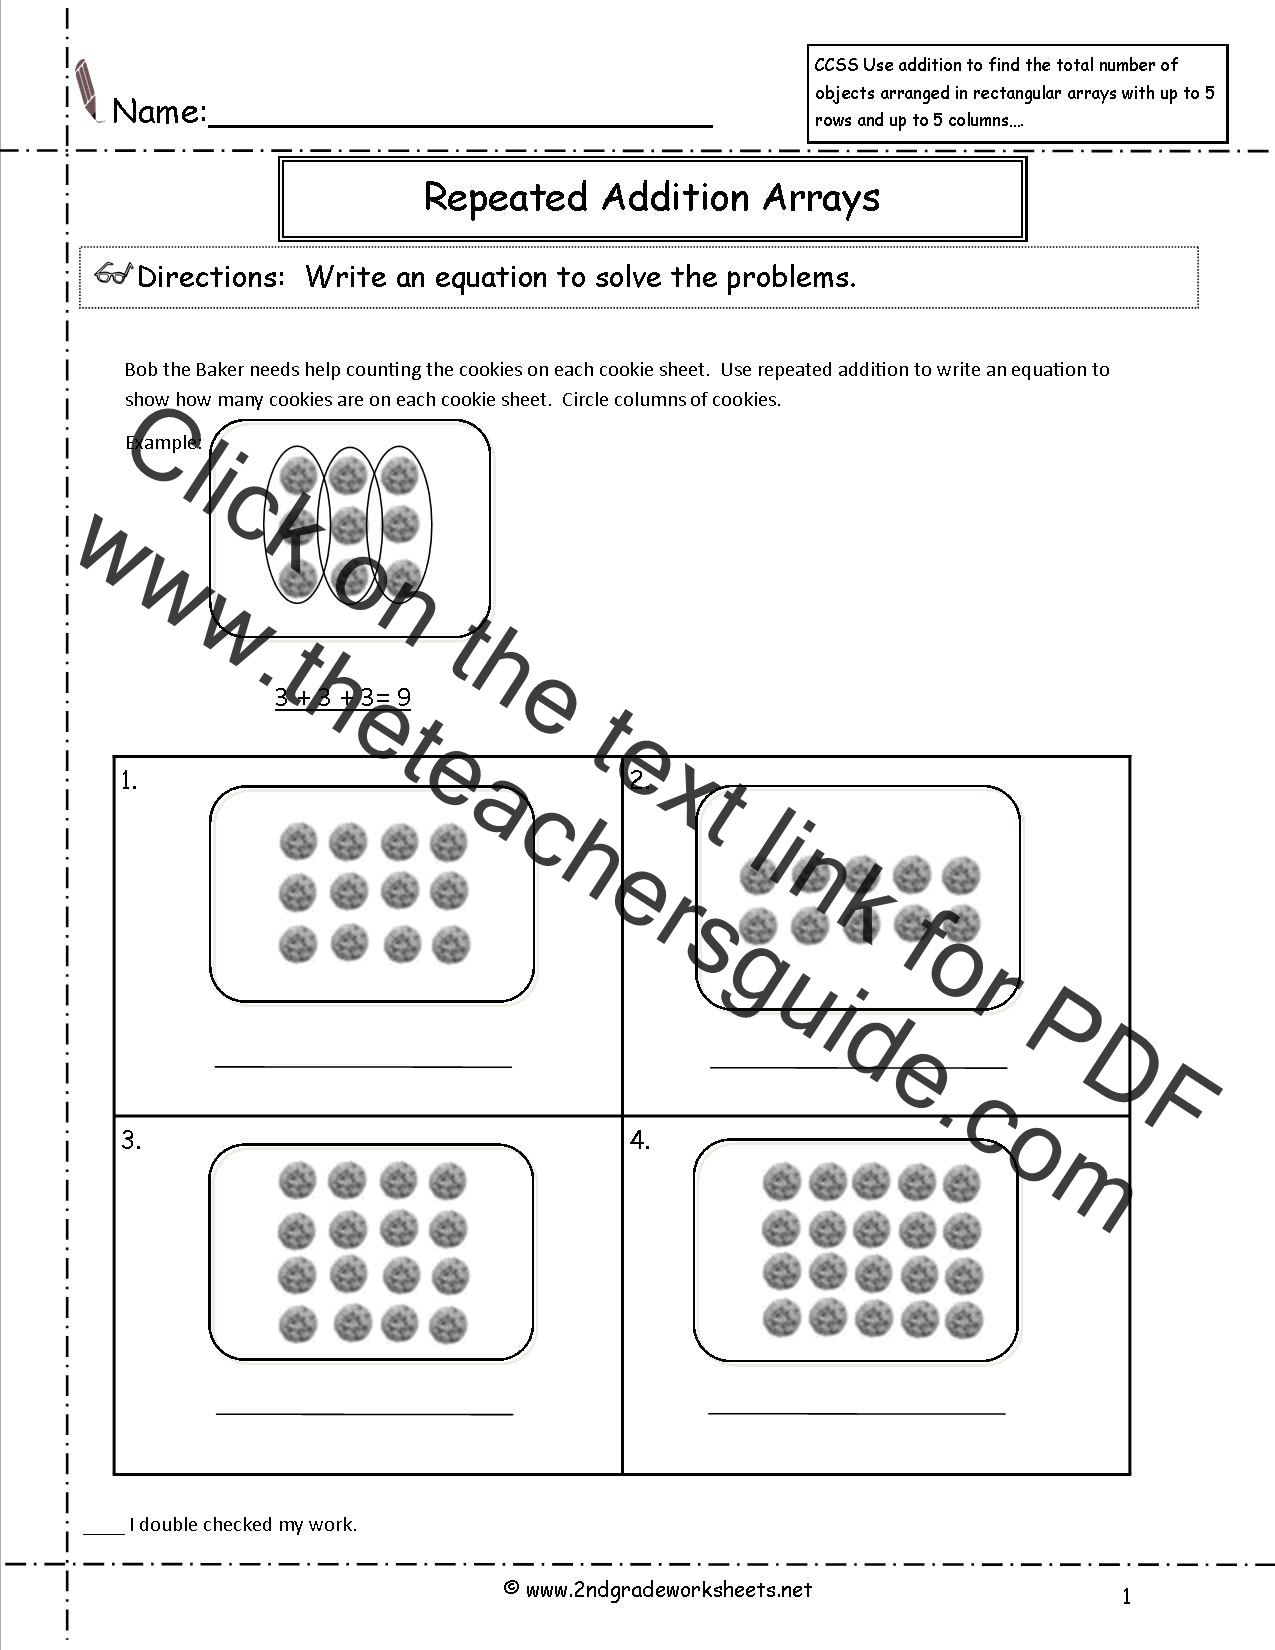 Worksheets 3rd Grade Math Common Core Worksheets 2nd grade math common core state standards worksheets ccss 2 oa 4 worksheets